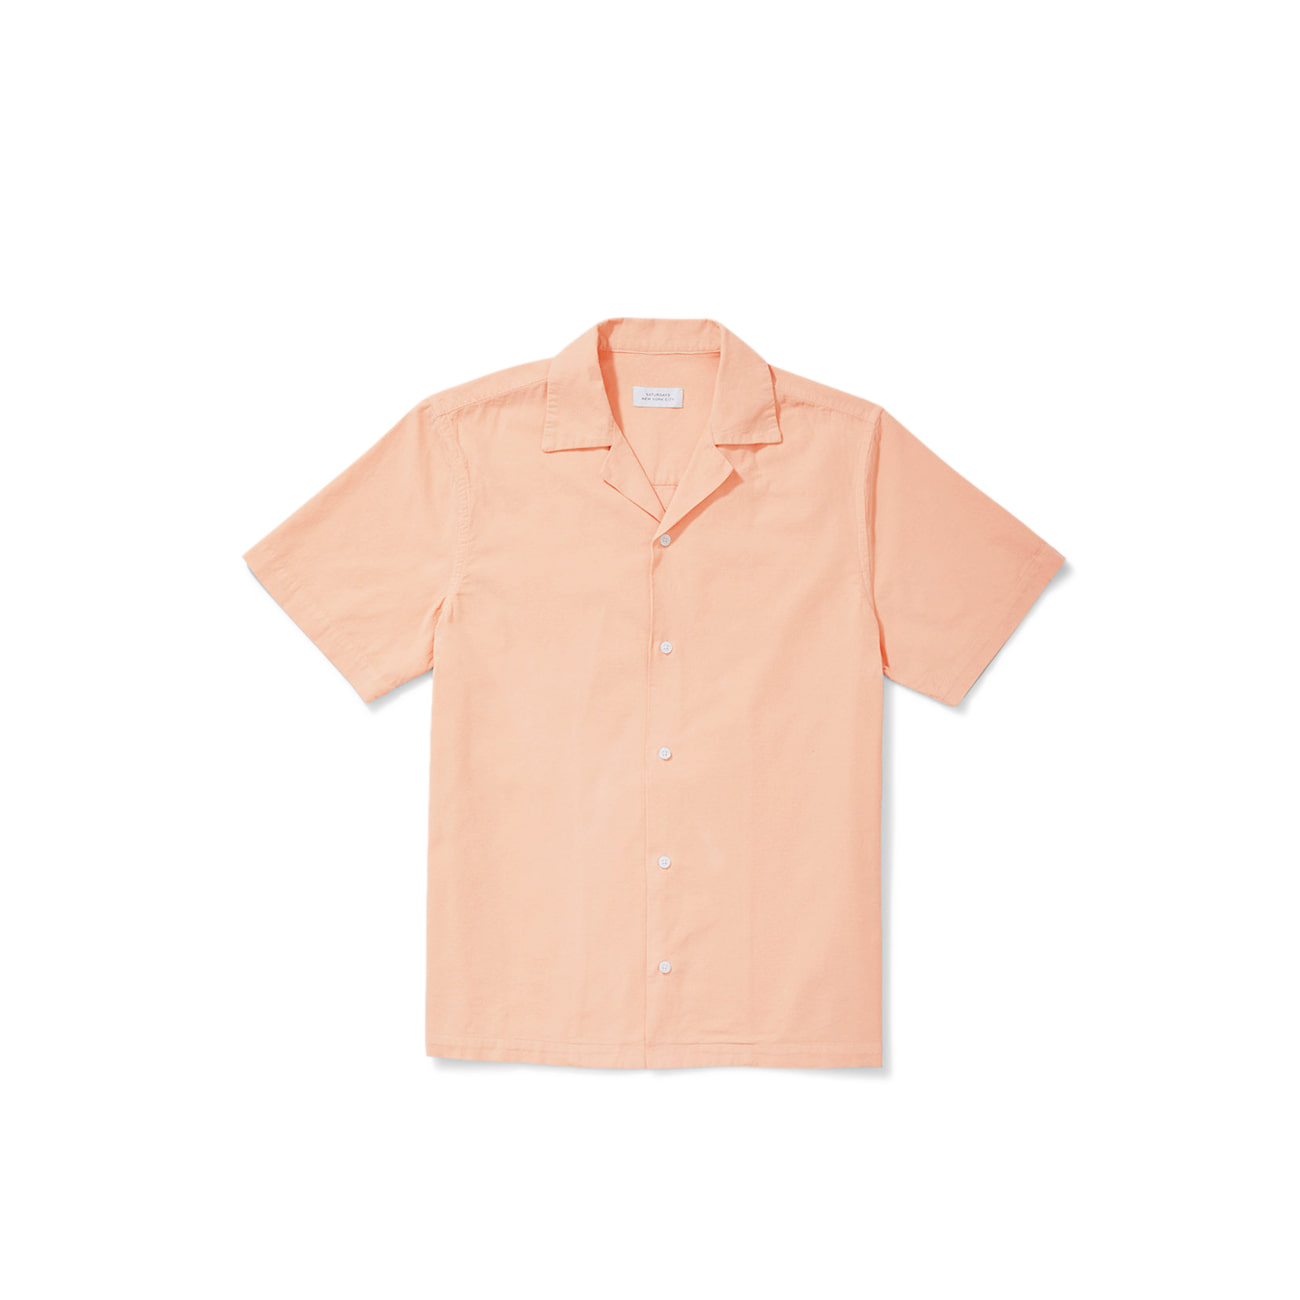 Canty Cord Short Sleeve Shirt